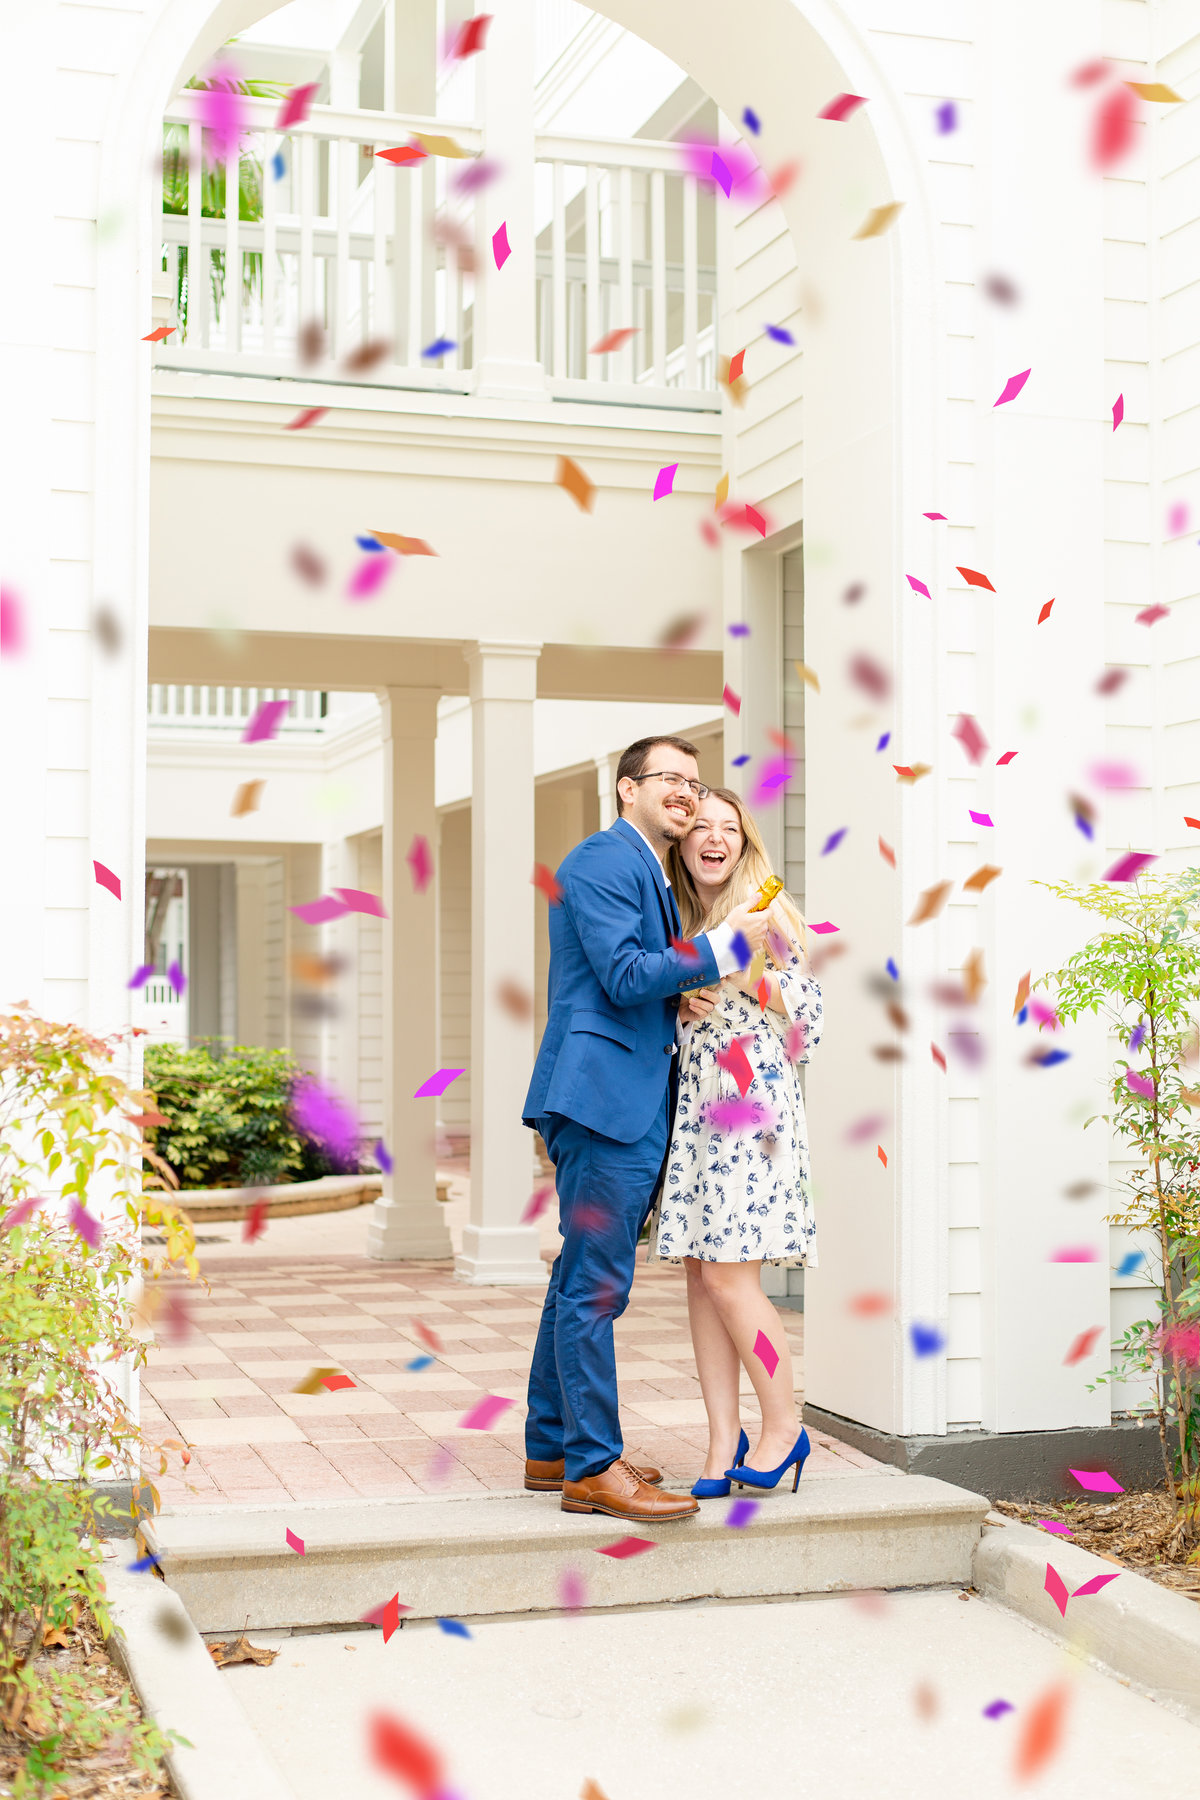 Tampa Florida husband and wife photography team celebrate with confetti champagne bottle with wife in white floral dress and husband in blue suit